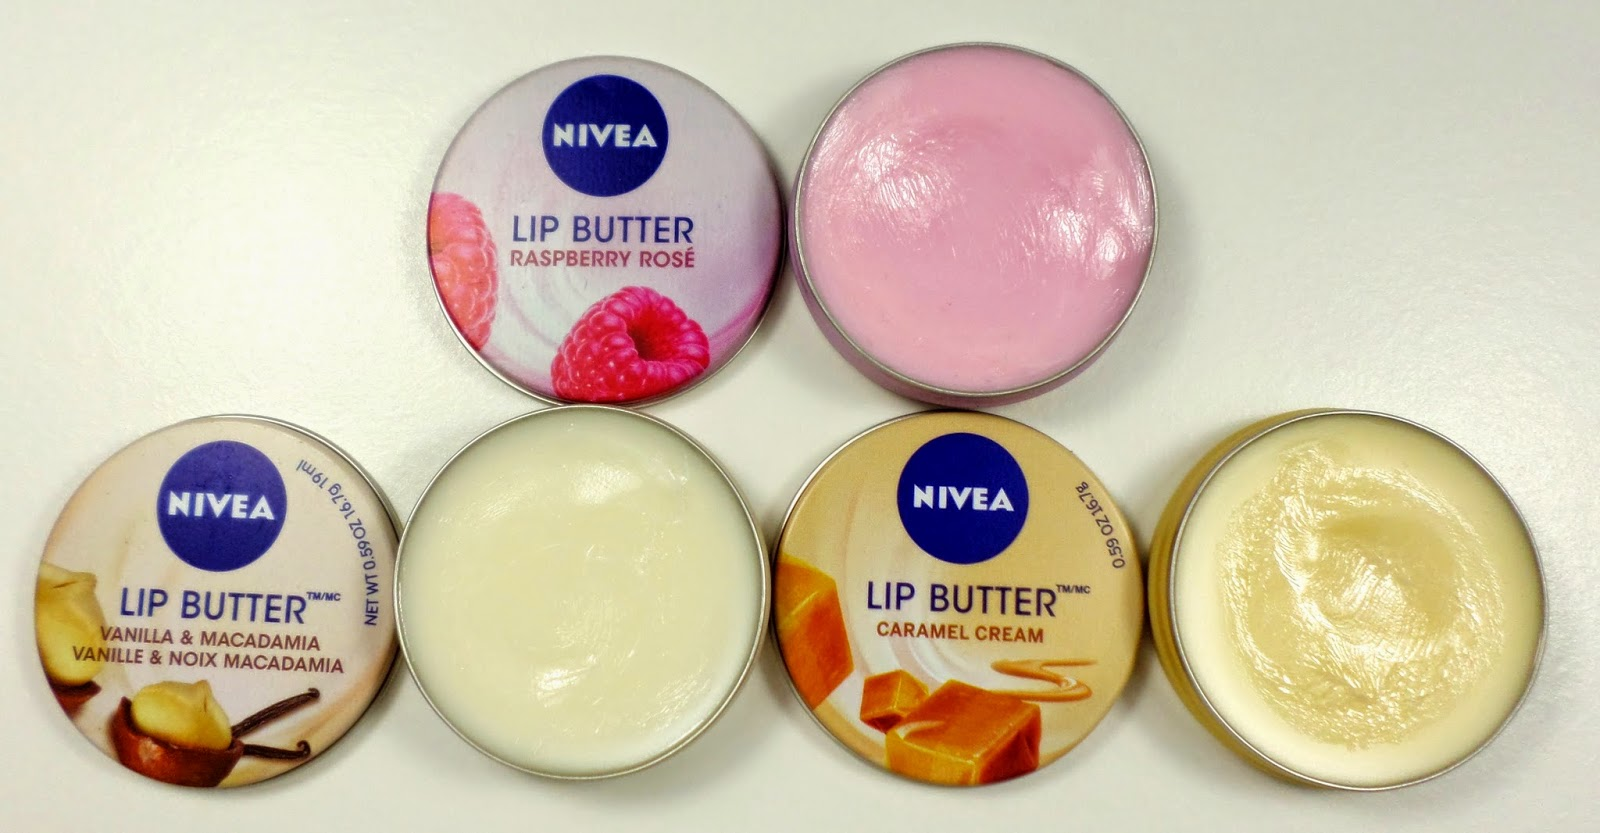 Nivea Lip Butters Raspberry Rose, Vanilla Macadamia & Caramel Cream